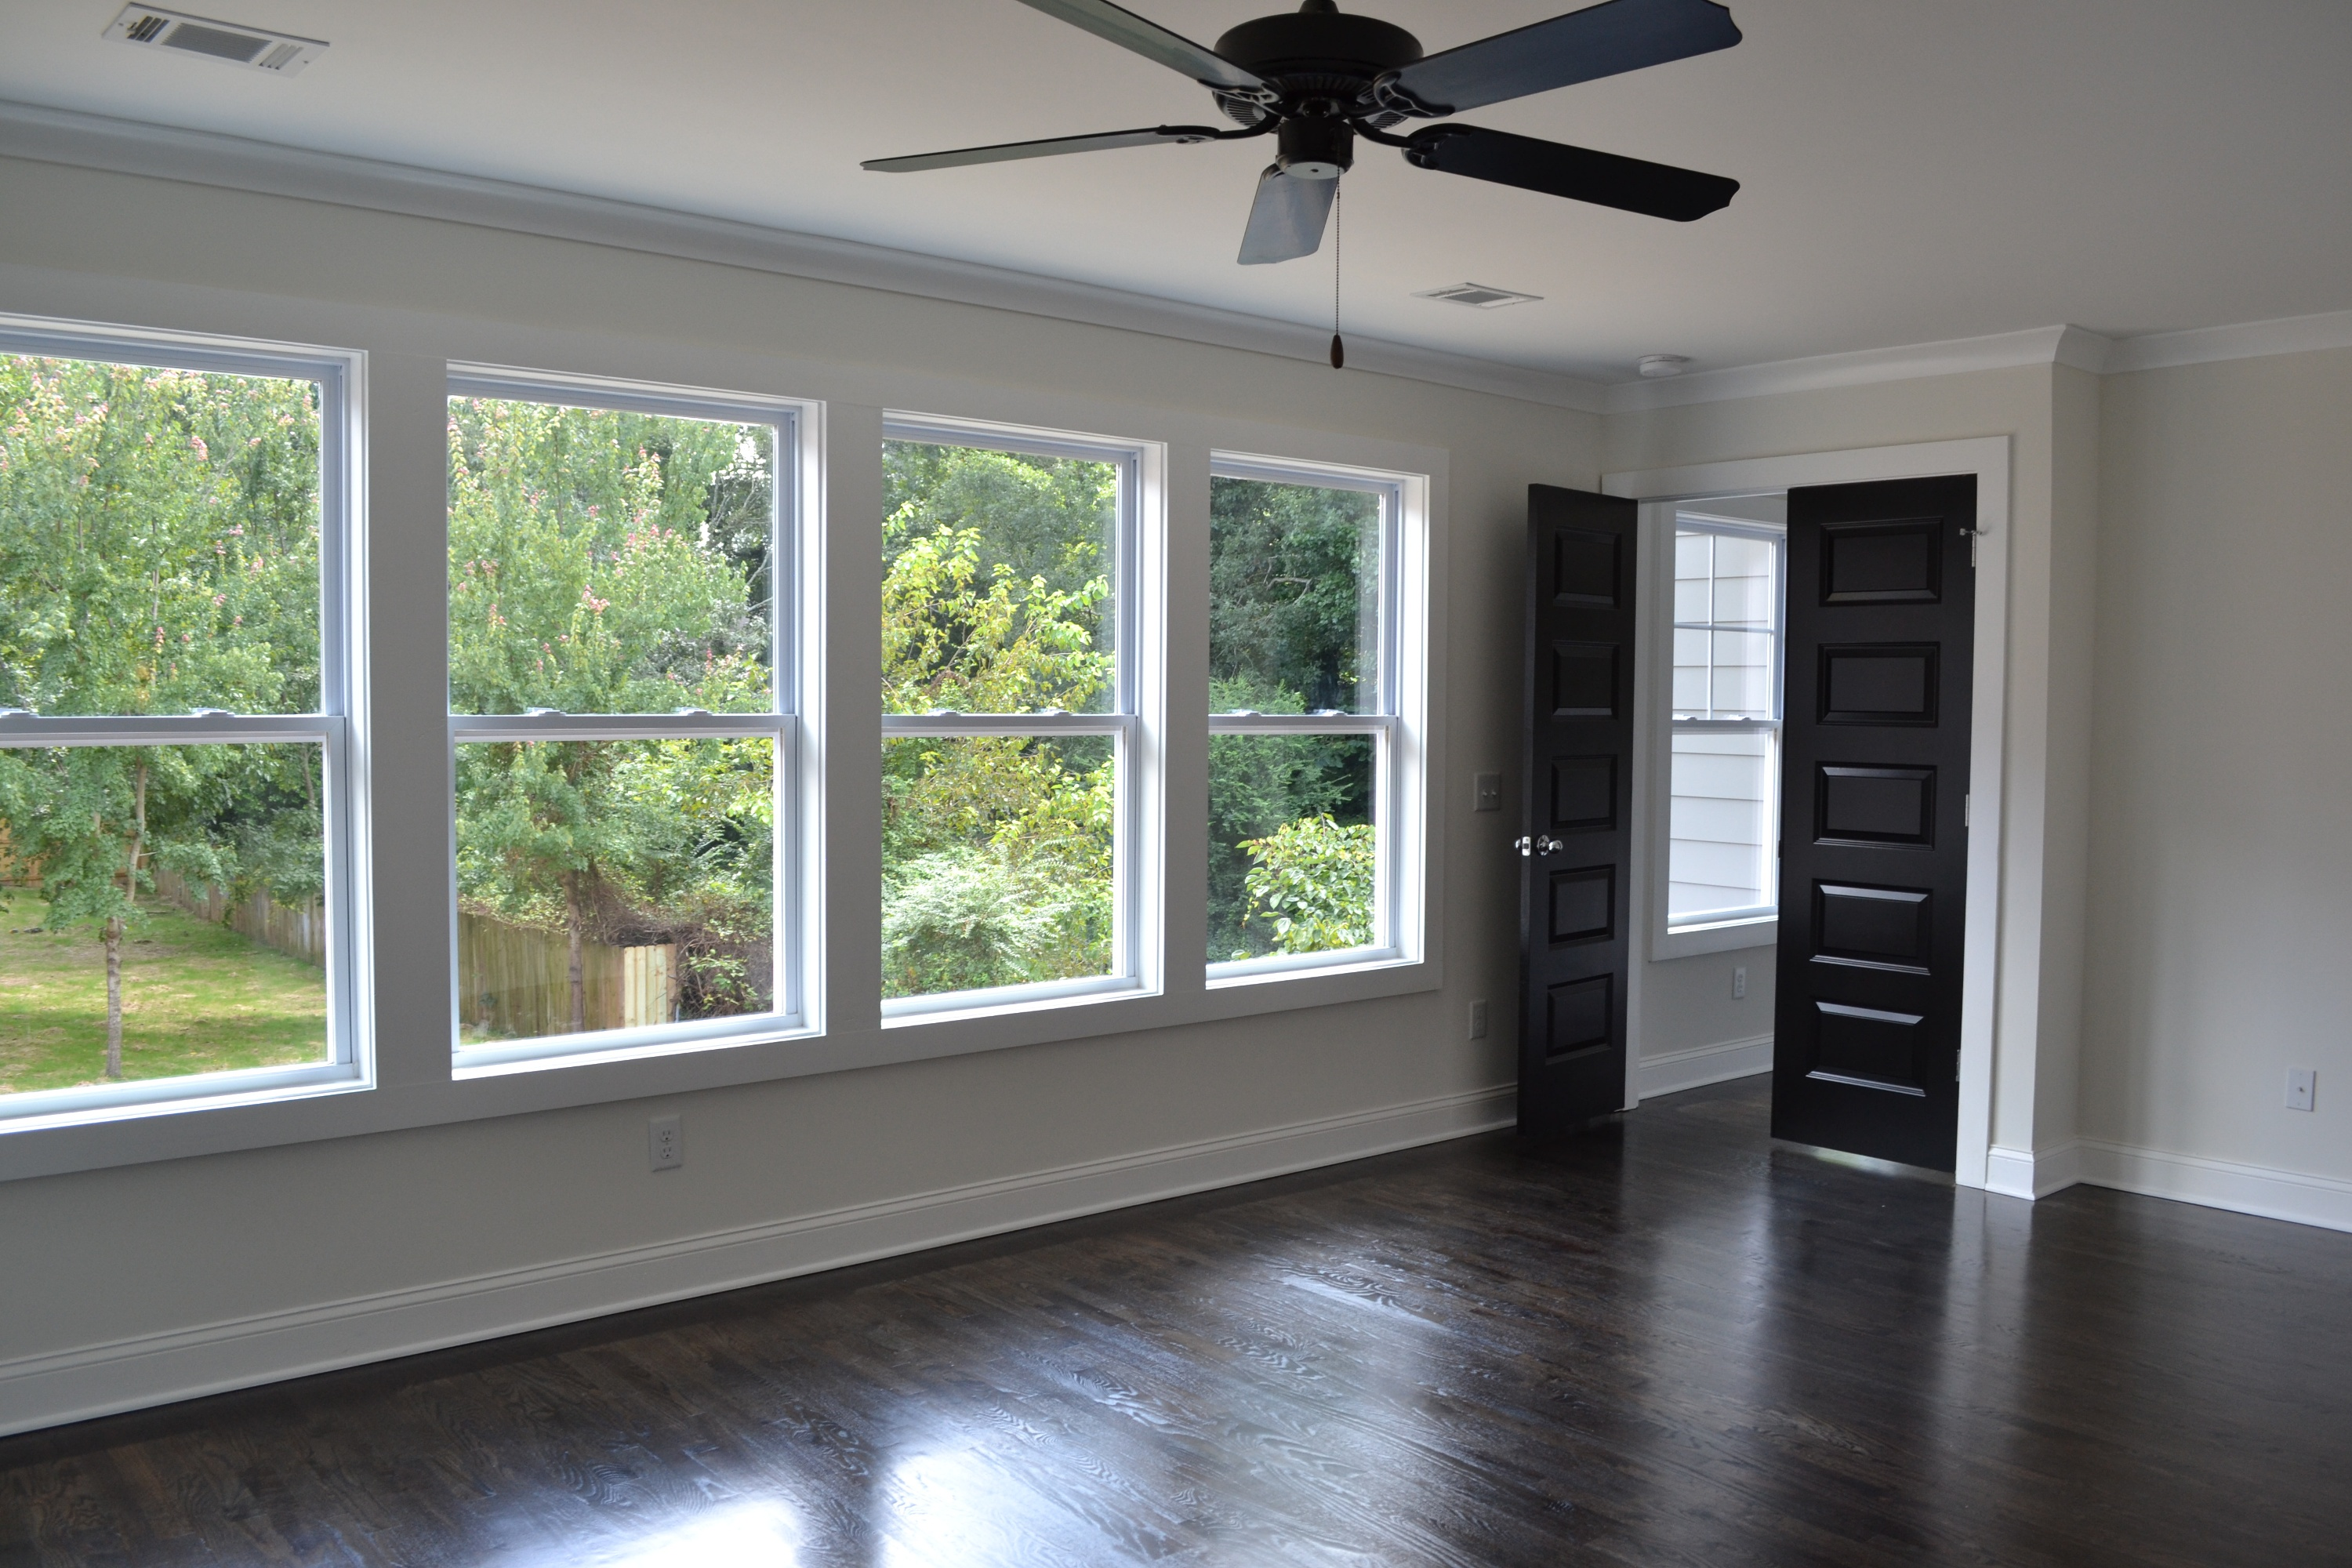 Best energy efficient windows to save electricity energy for What makes a window energy efficient